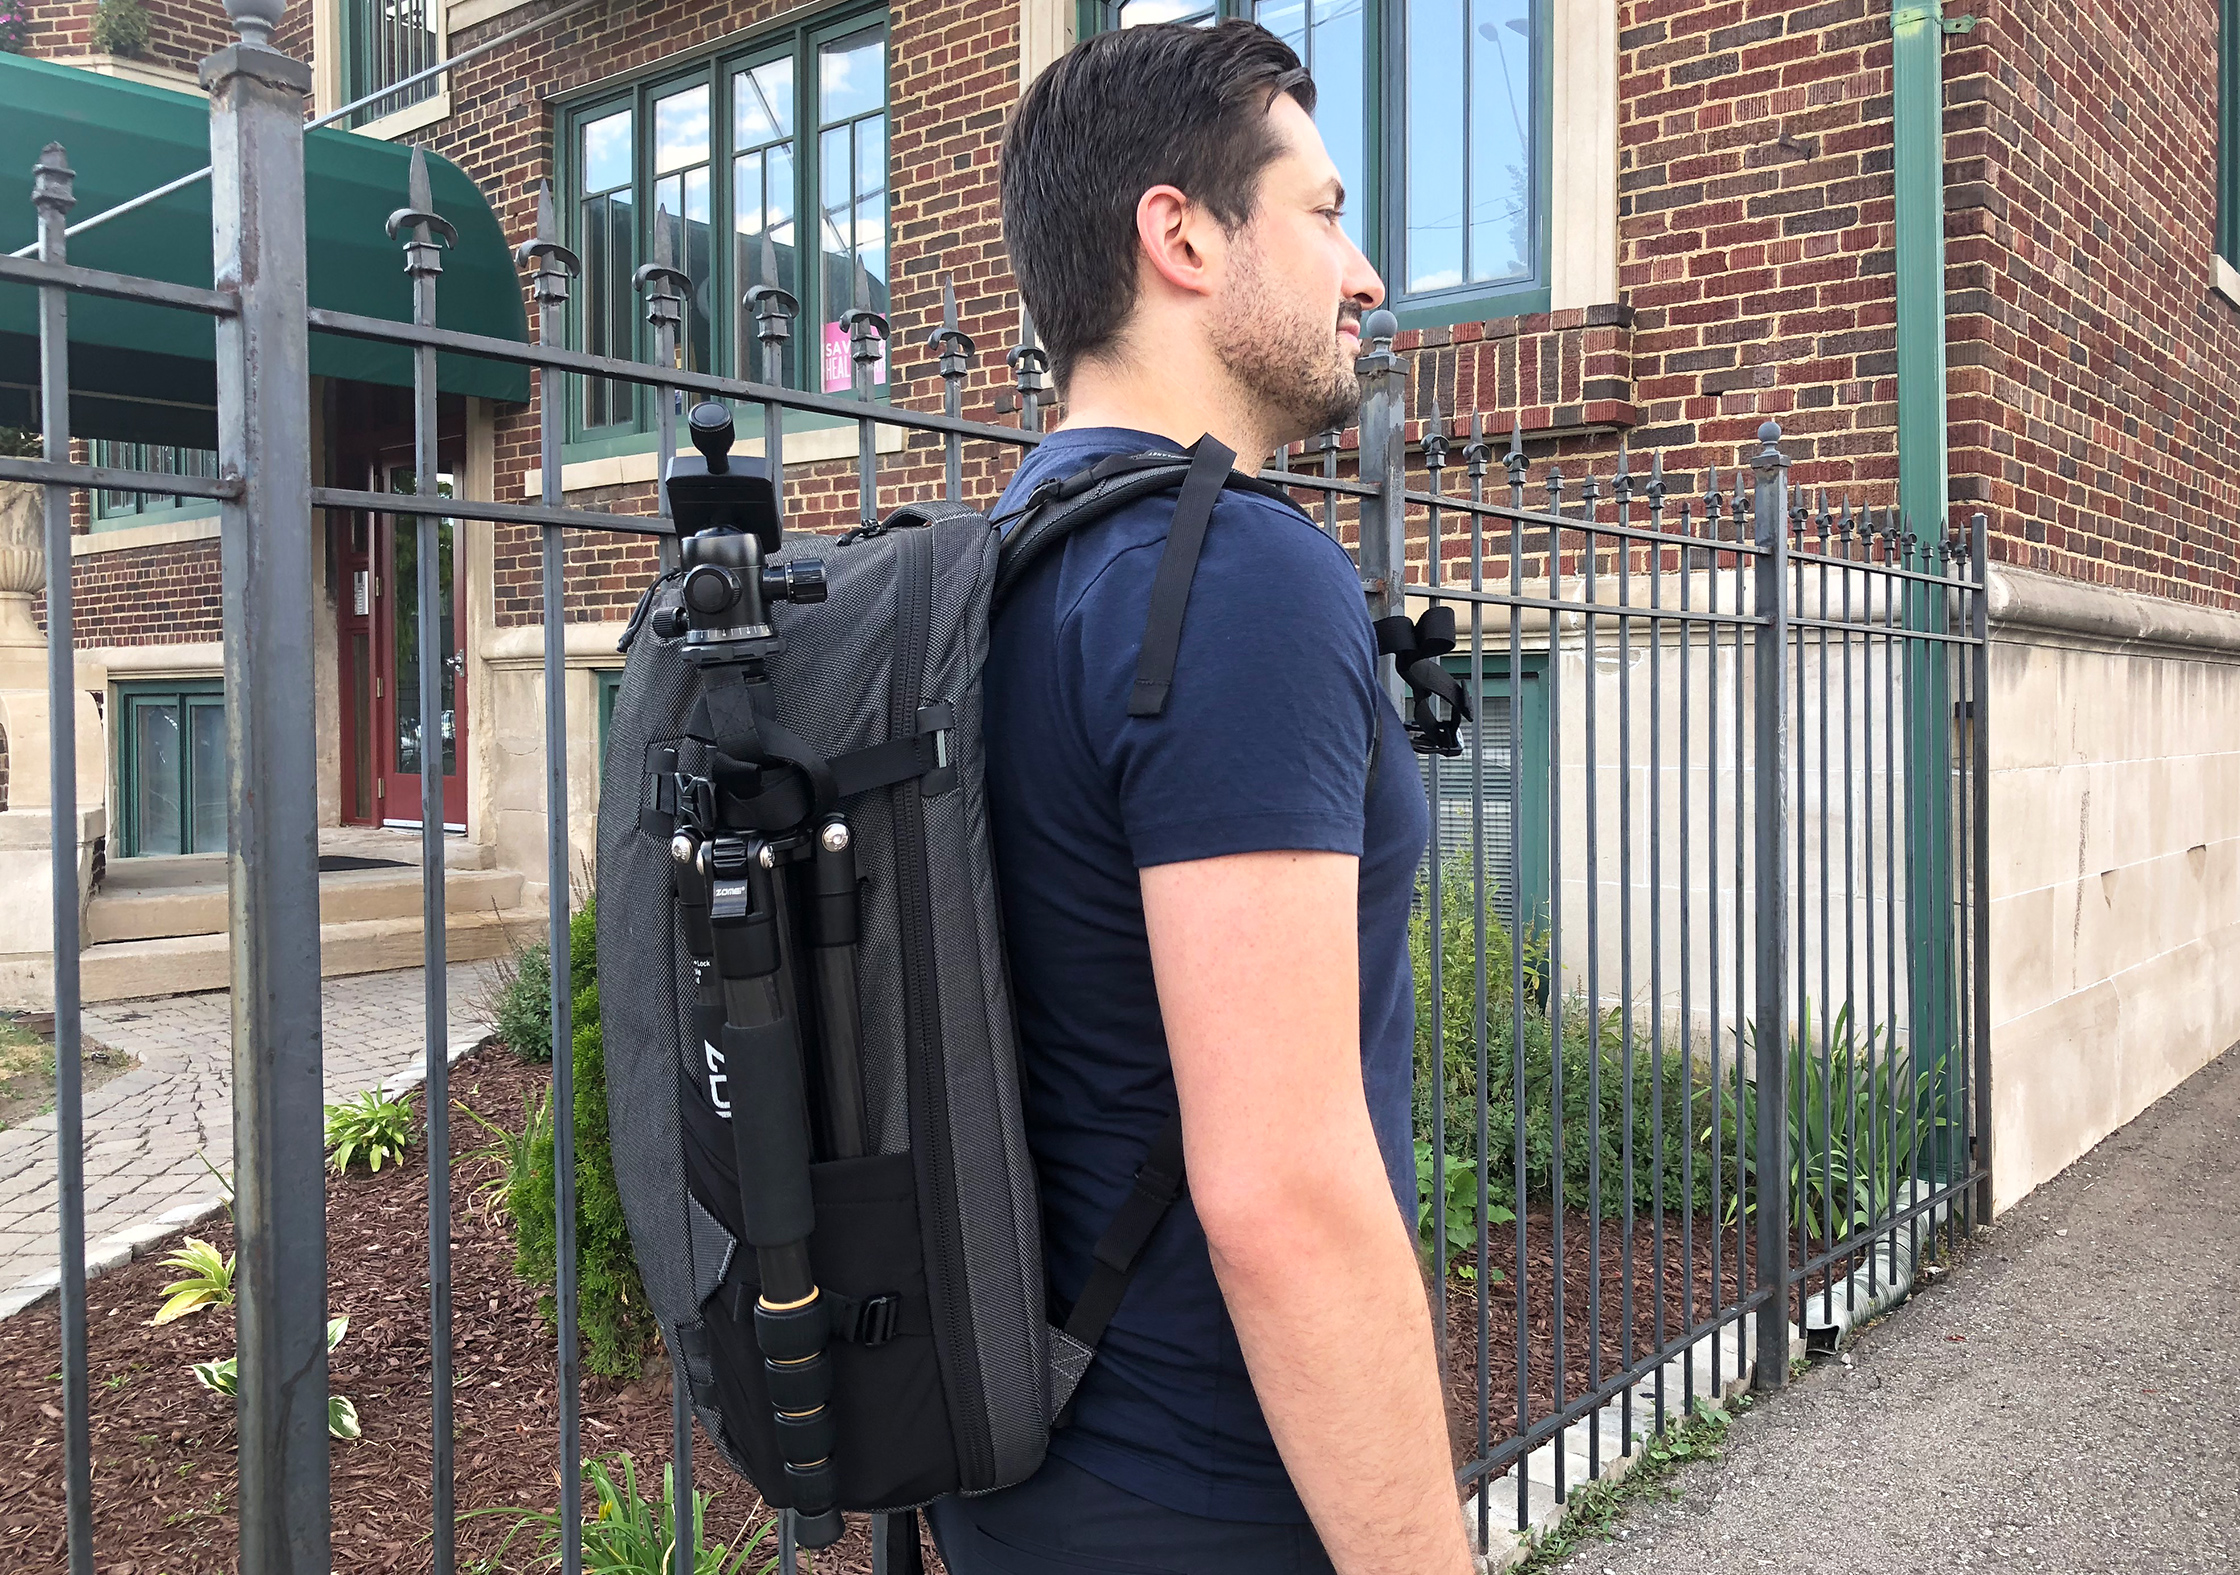 Heimplanet Transit Line Travel Pack Tripod In Pocket